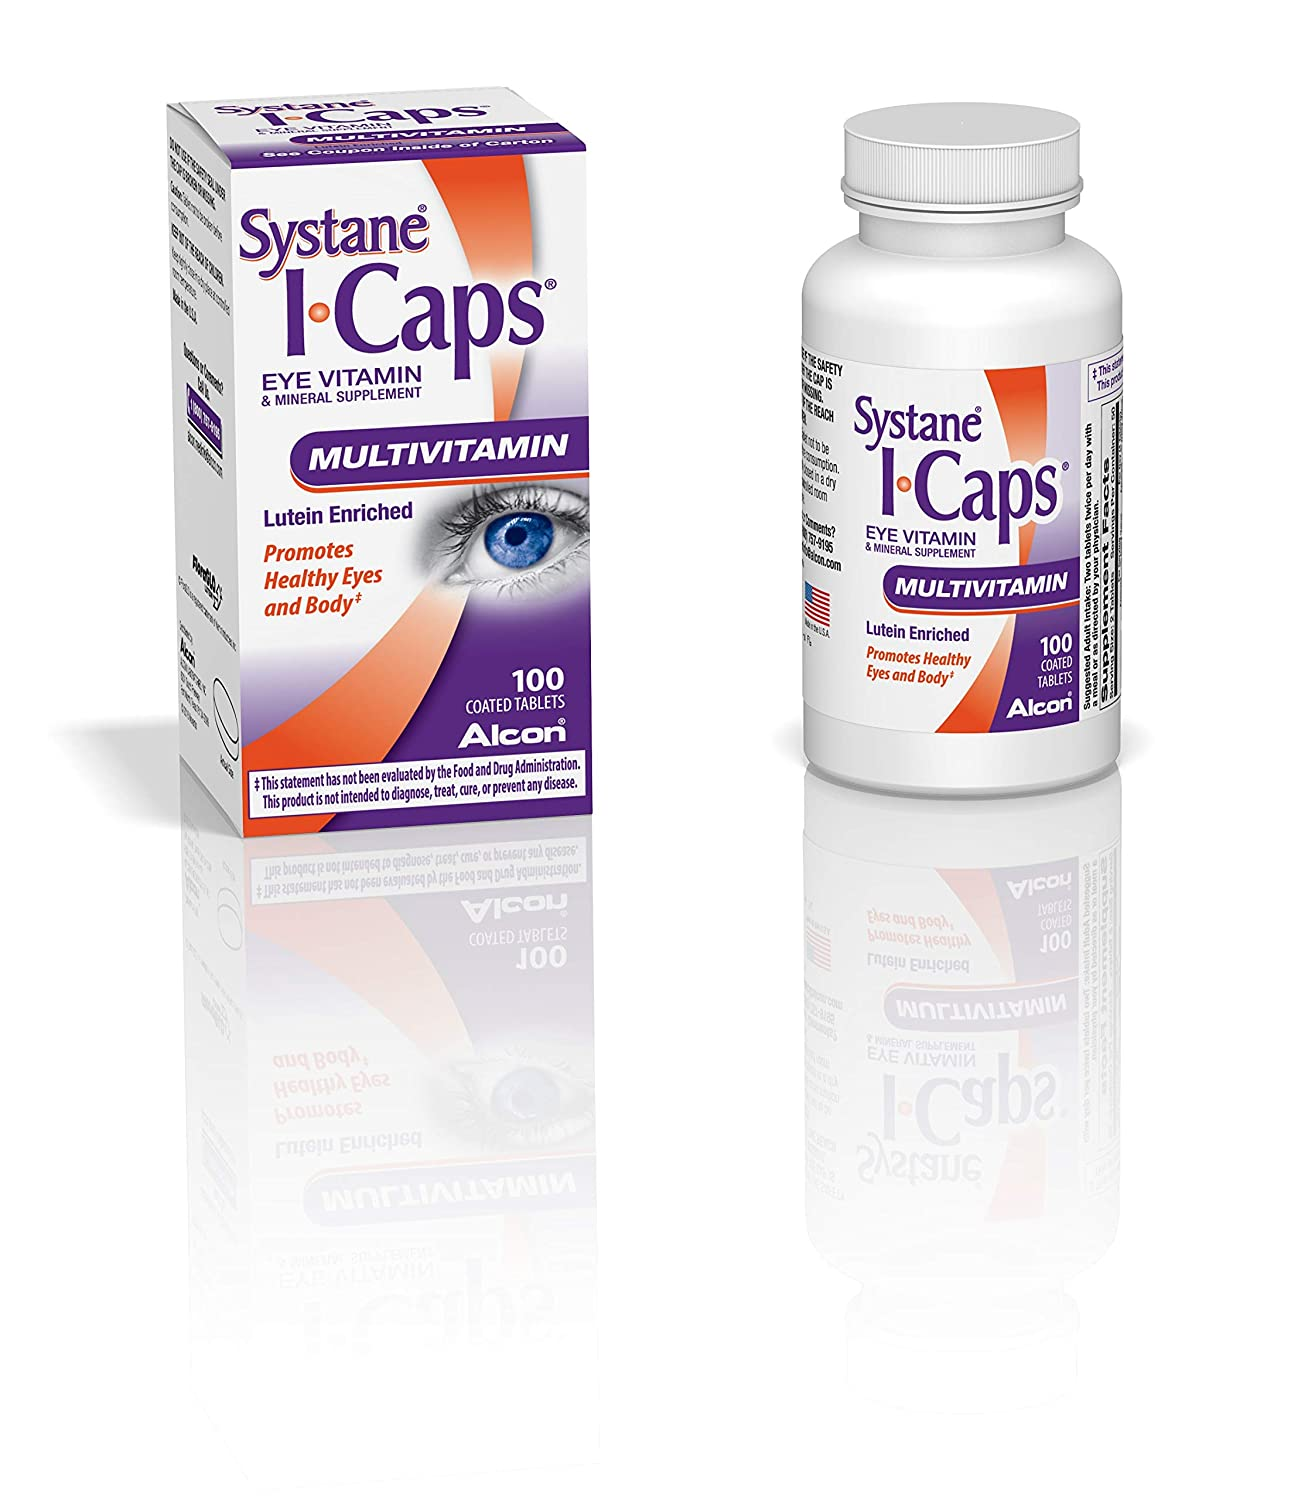 Systane ICaps Eye Vitamin Mineral Supplement, Multivitamin Formula, 100 Coated Tablets